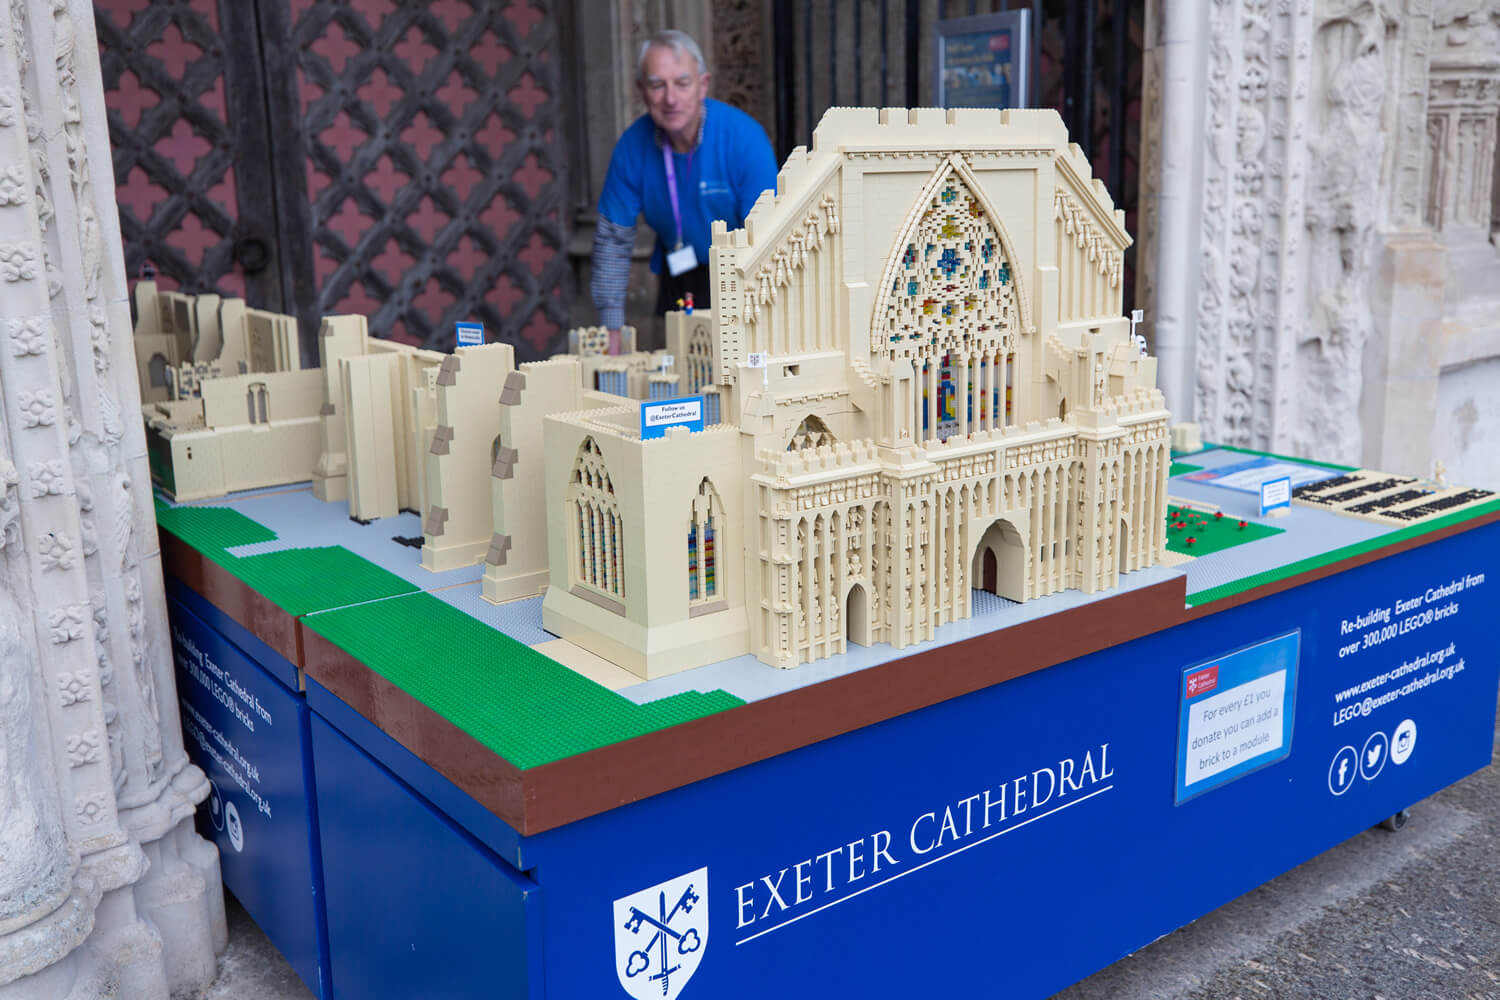 Big LEGO build at Exeter Cathedral | Things to do in Exeter